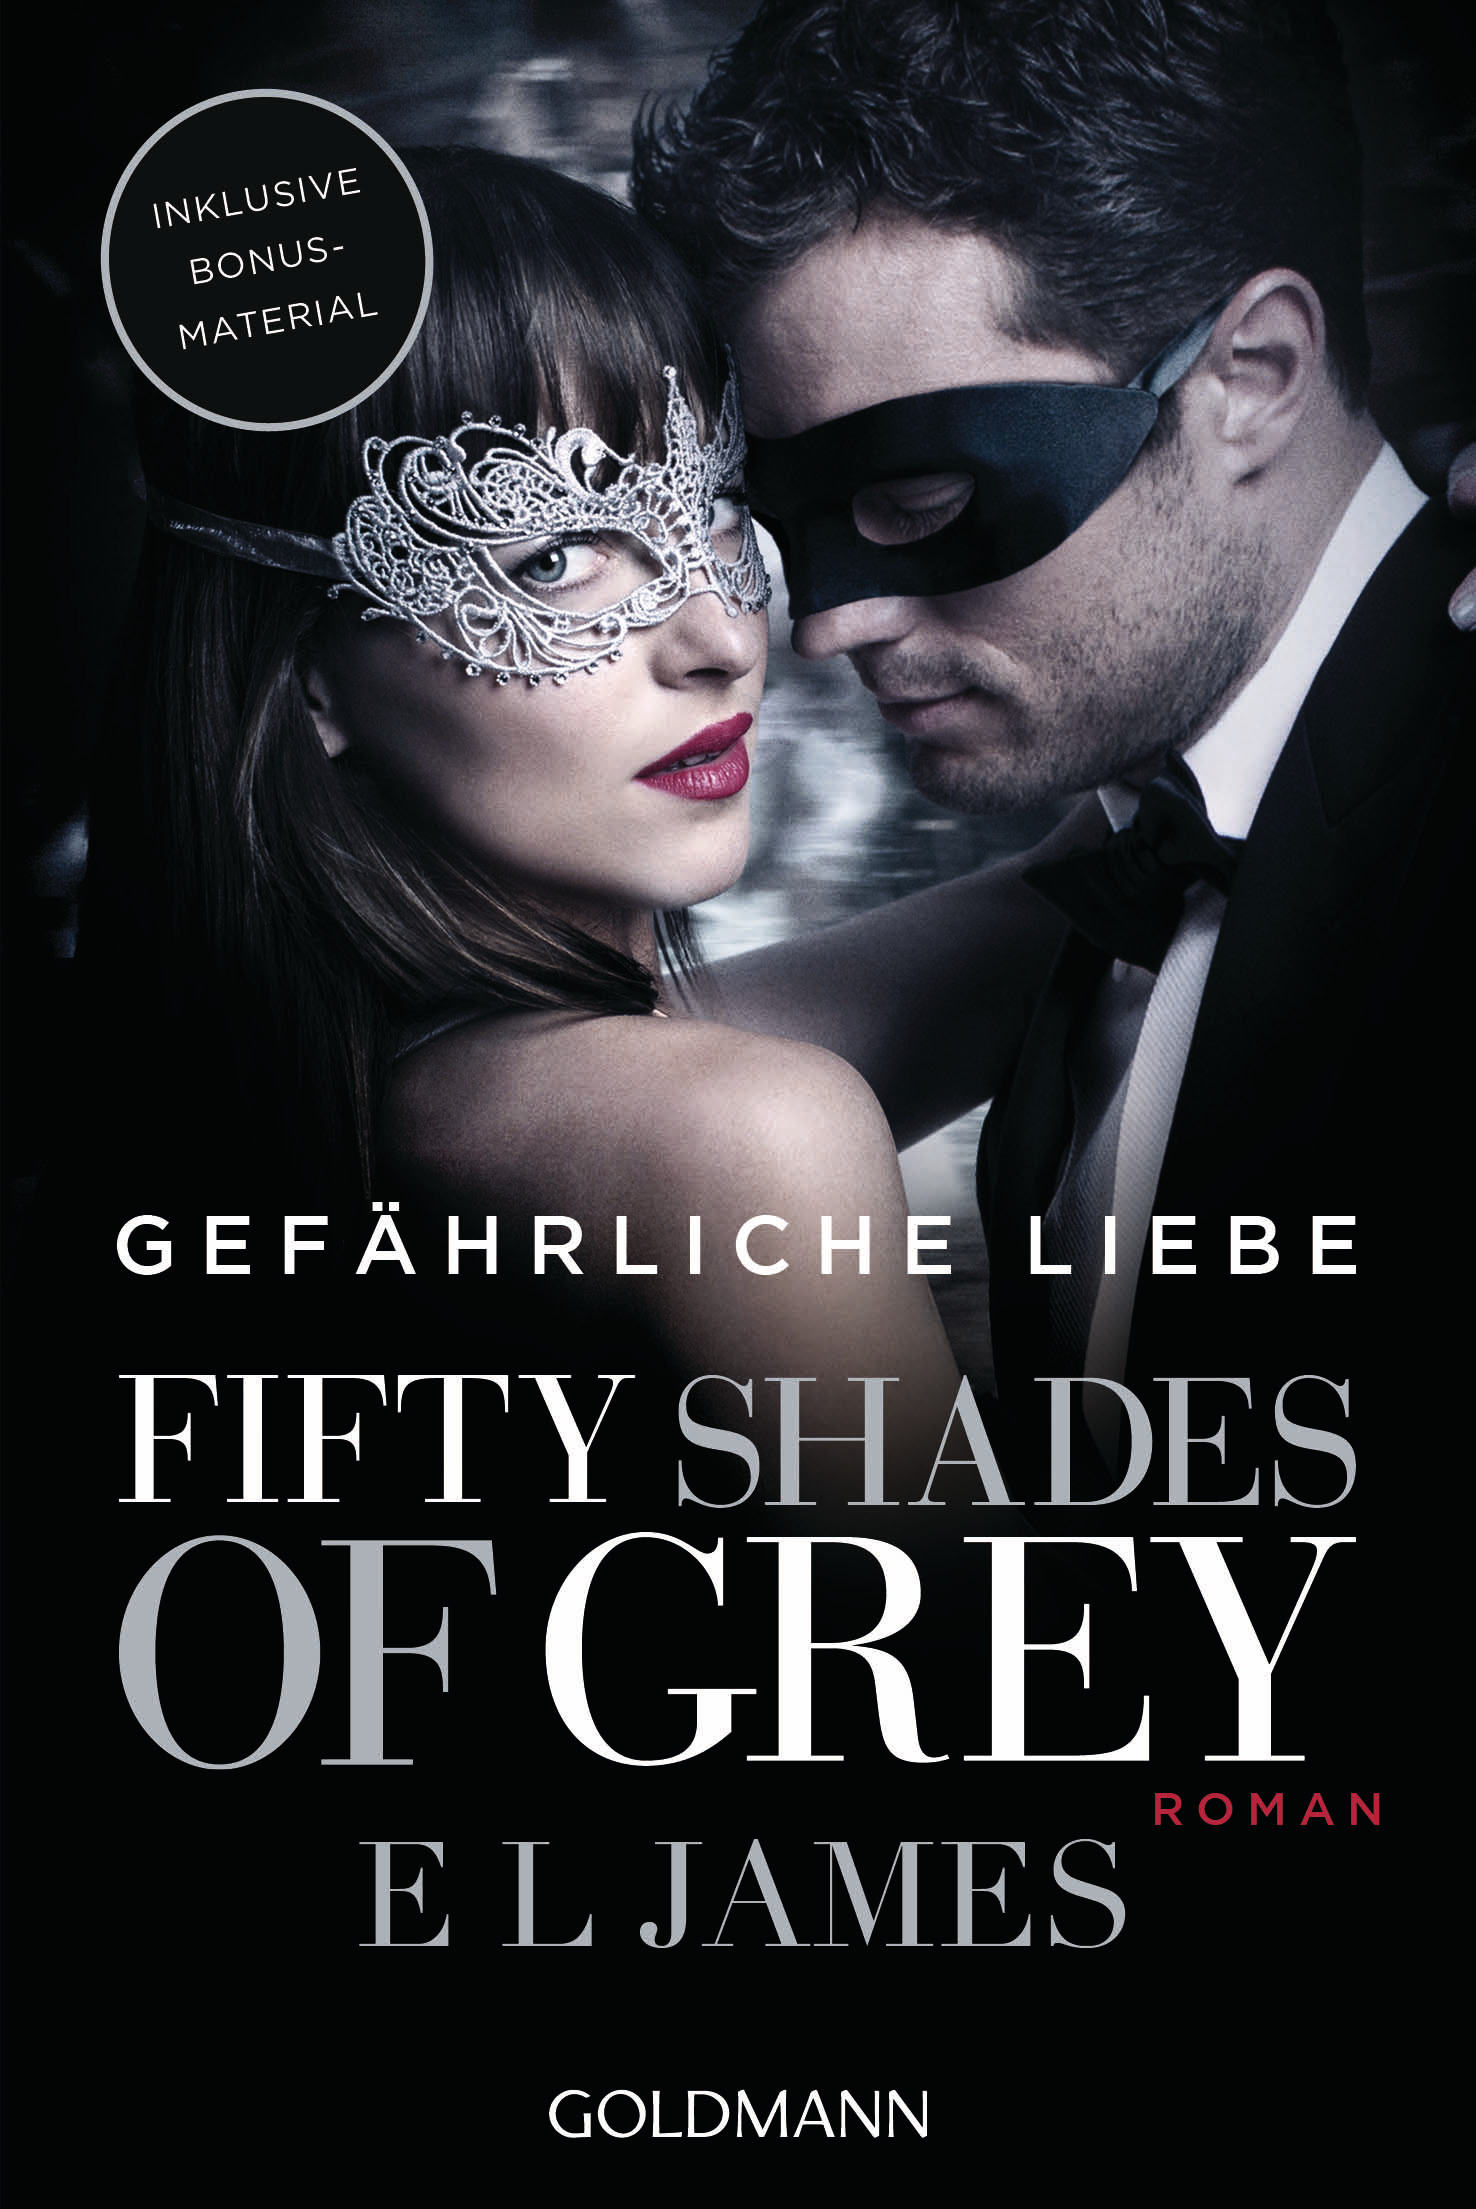 E l james fifty shades of grey gef hrliche liebe for When does fifty shades of grey